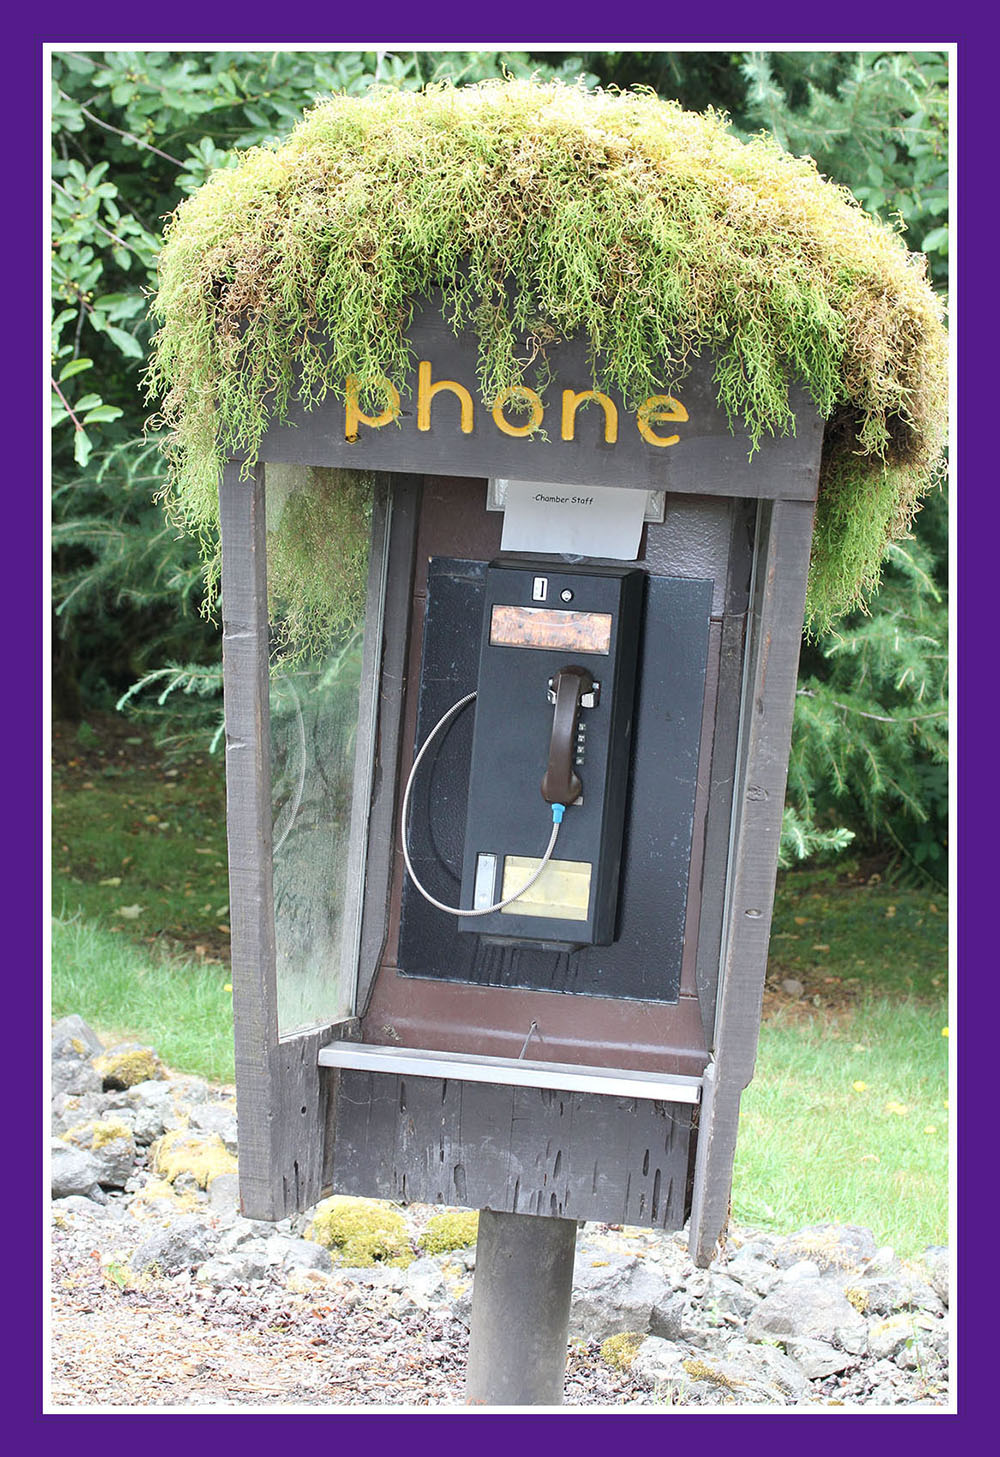 An An old pay phone which was located at the Hoh Ranger Station.